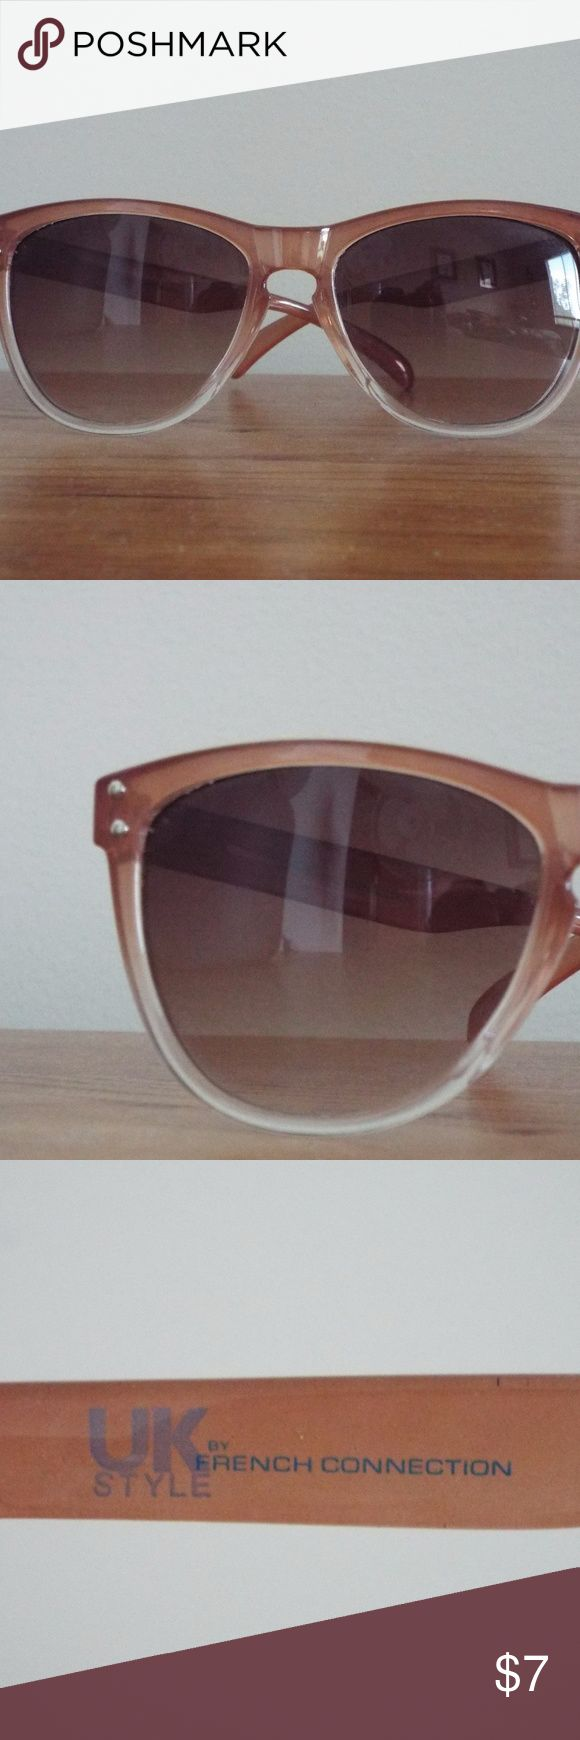 🕶️🌞 FRENCH CONNECTION BROWN OMBRE SUNGLASSES UK Style by French Connection! Beautiful sunglasses for a sunny day out any time of year! Go with every outfit and very sturdy and stylish. French Connection Accessories Sunglasses